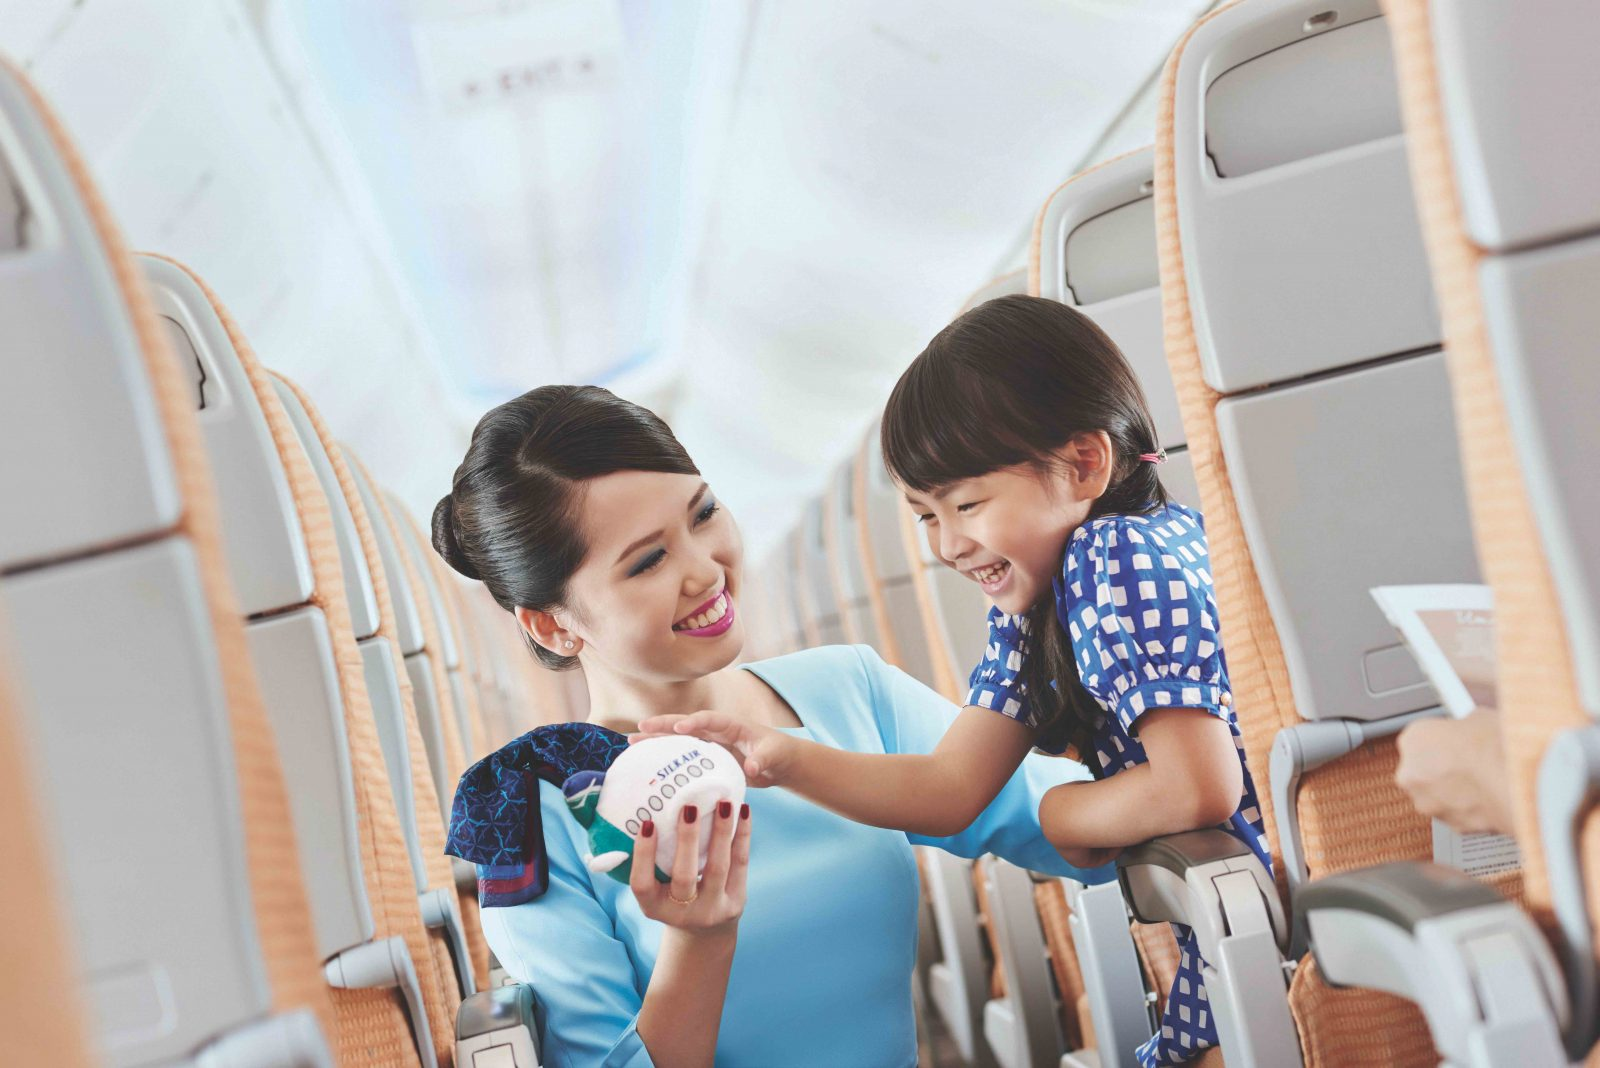 Singapore's Silk Air is Recruiting Cabin Crew: Will You Be Attending the Open Day on 8th January?